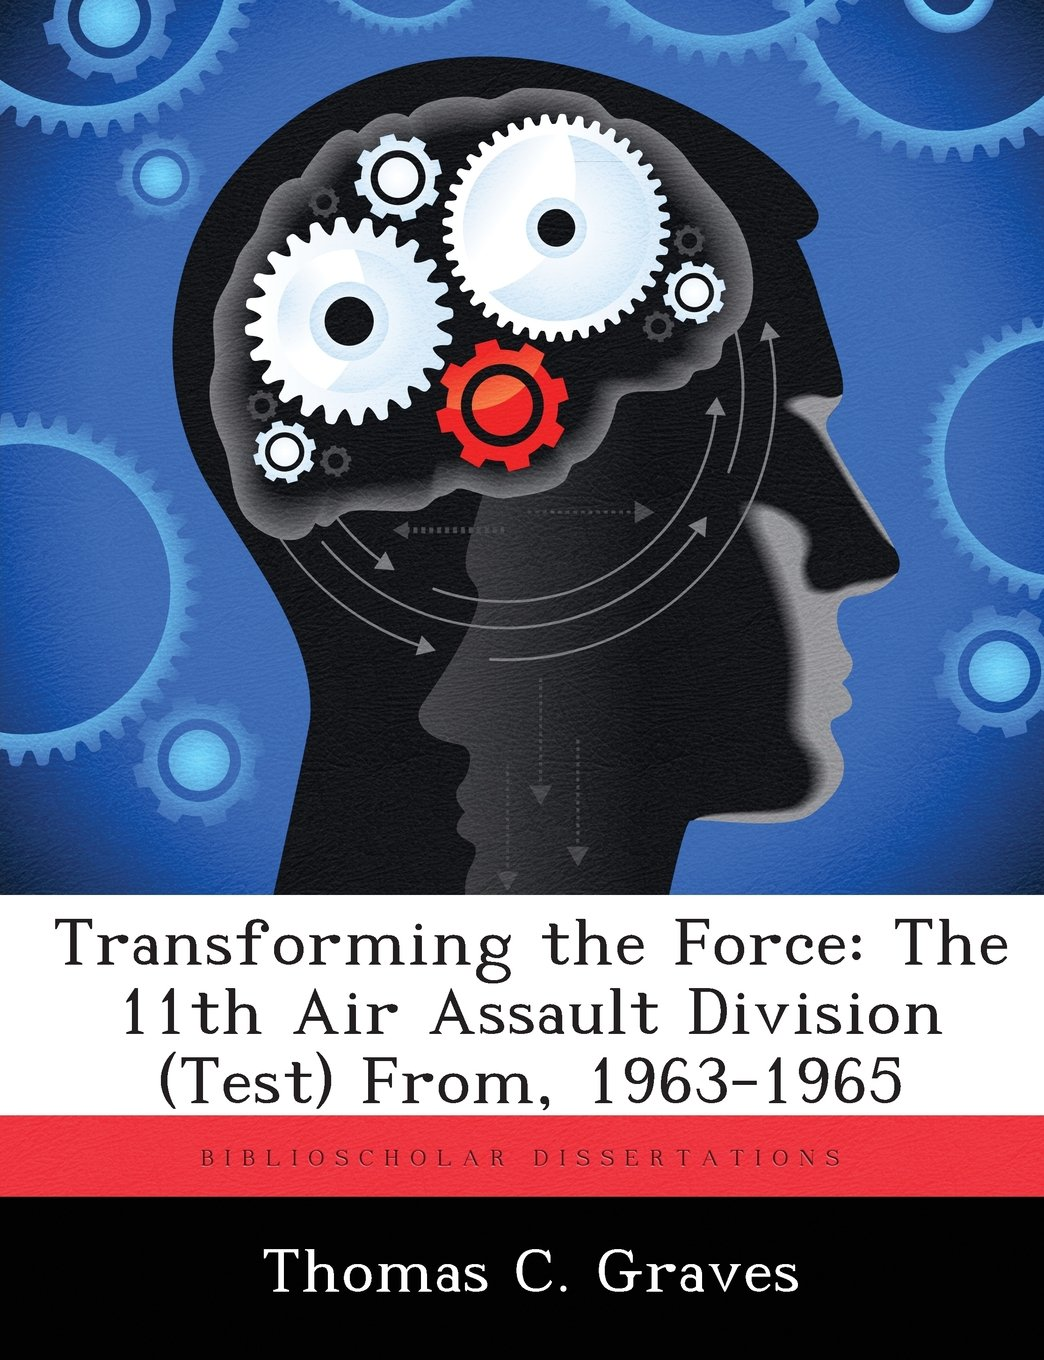 Transforming the Force: The 11th Air Assault Division (Test) From, 1963-1965 PDF